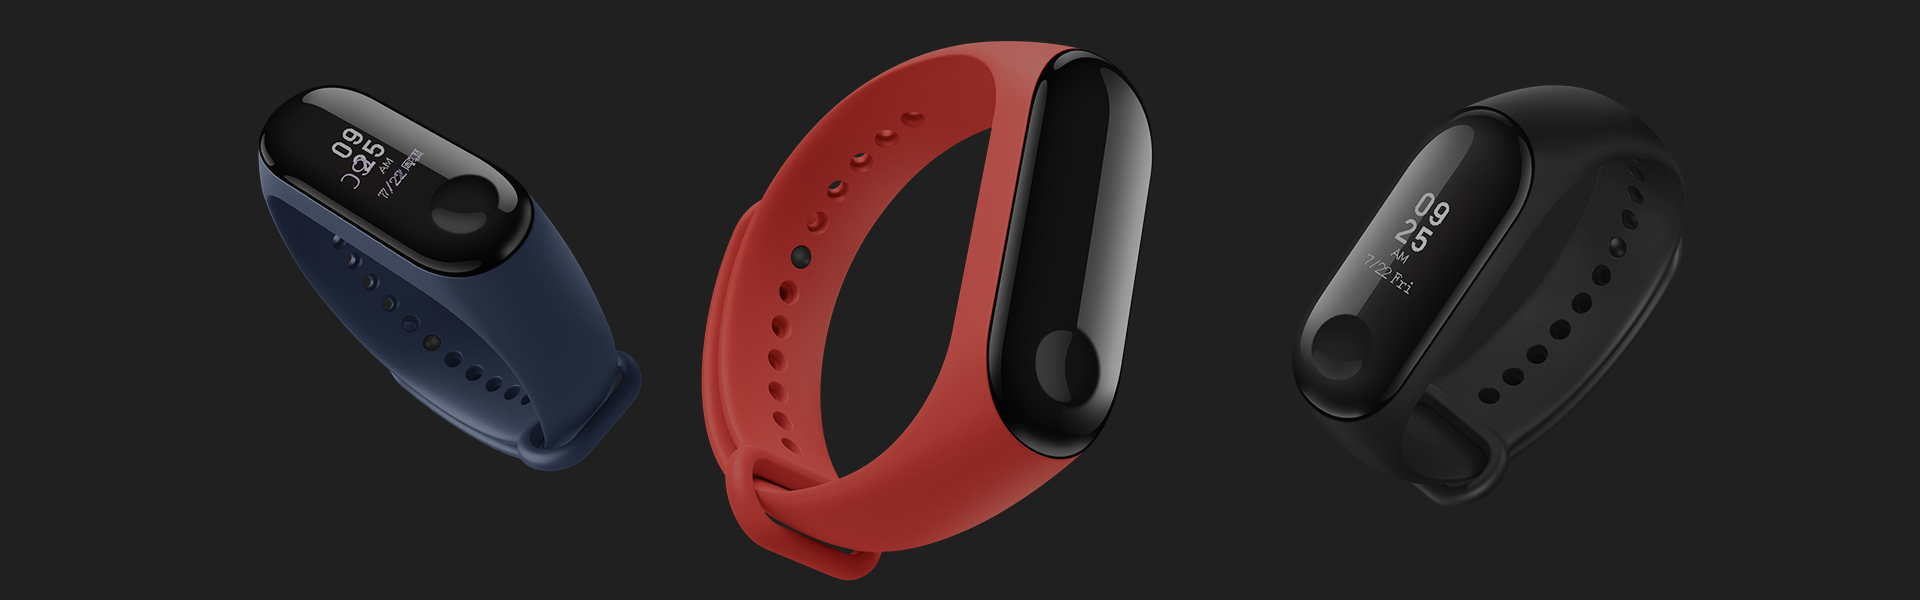 ????????????? | Xiaomi Mi Band 3 ???????????? Fitness Tracker ????????????????????? ?